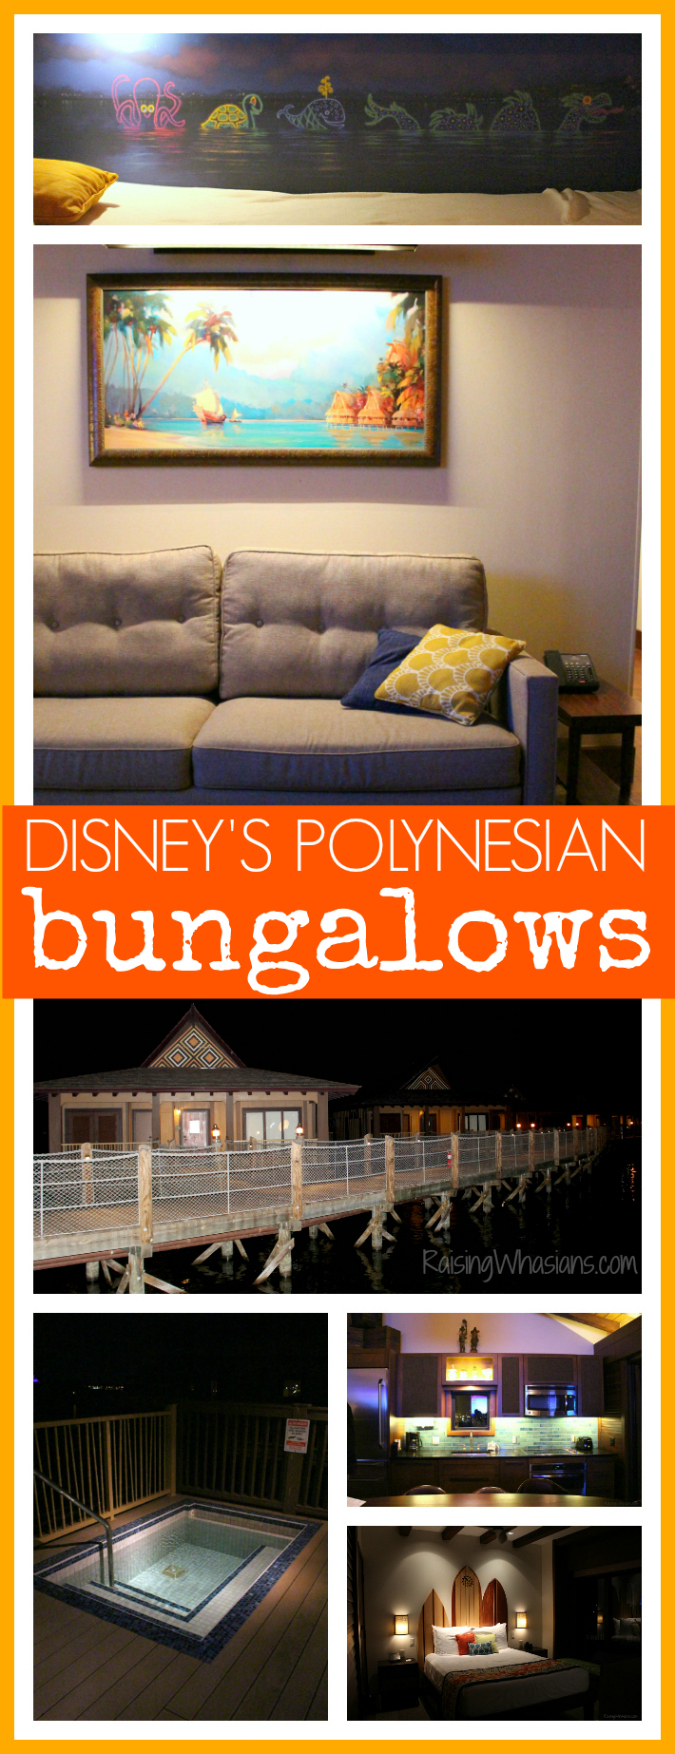 Disney's Polynesian bungalows photo tour fun facts